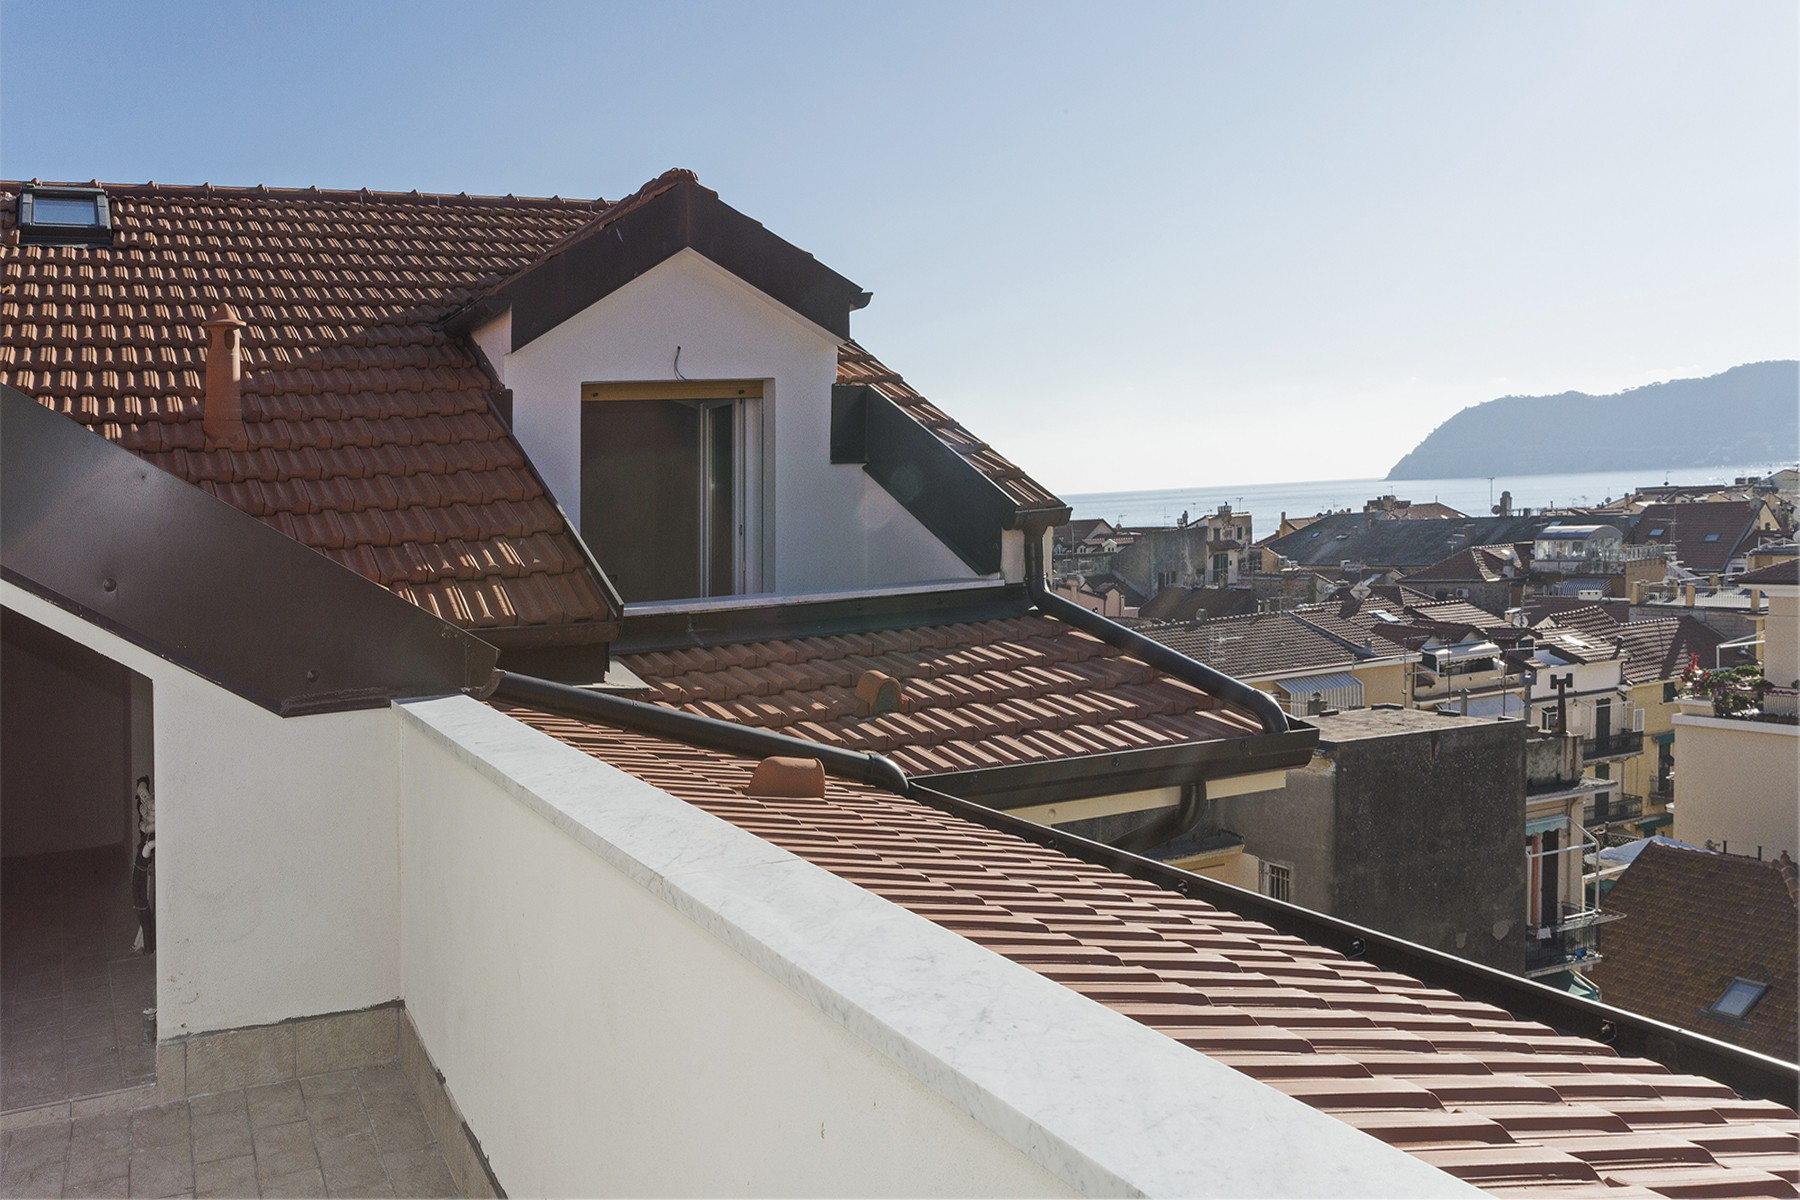 Single Family Home for Sale at See view Penthouse in Alassio Via Mazzini 38 Alassio, 17021 Italy